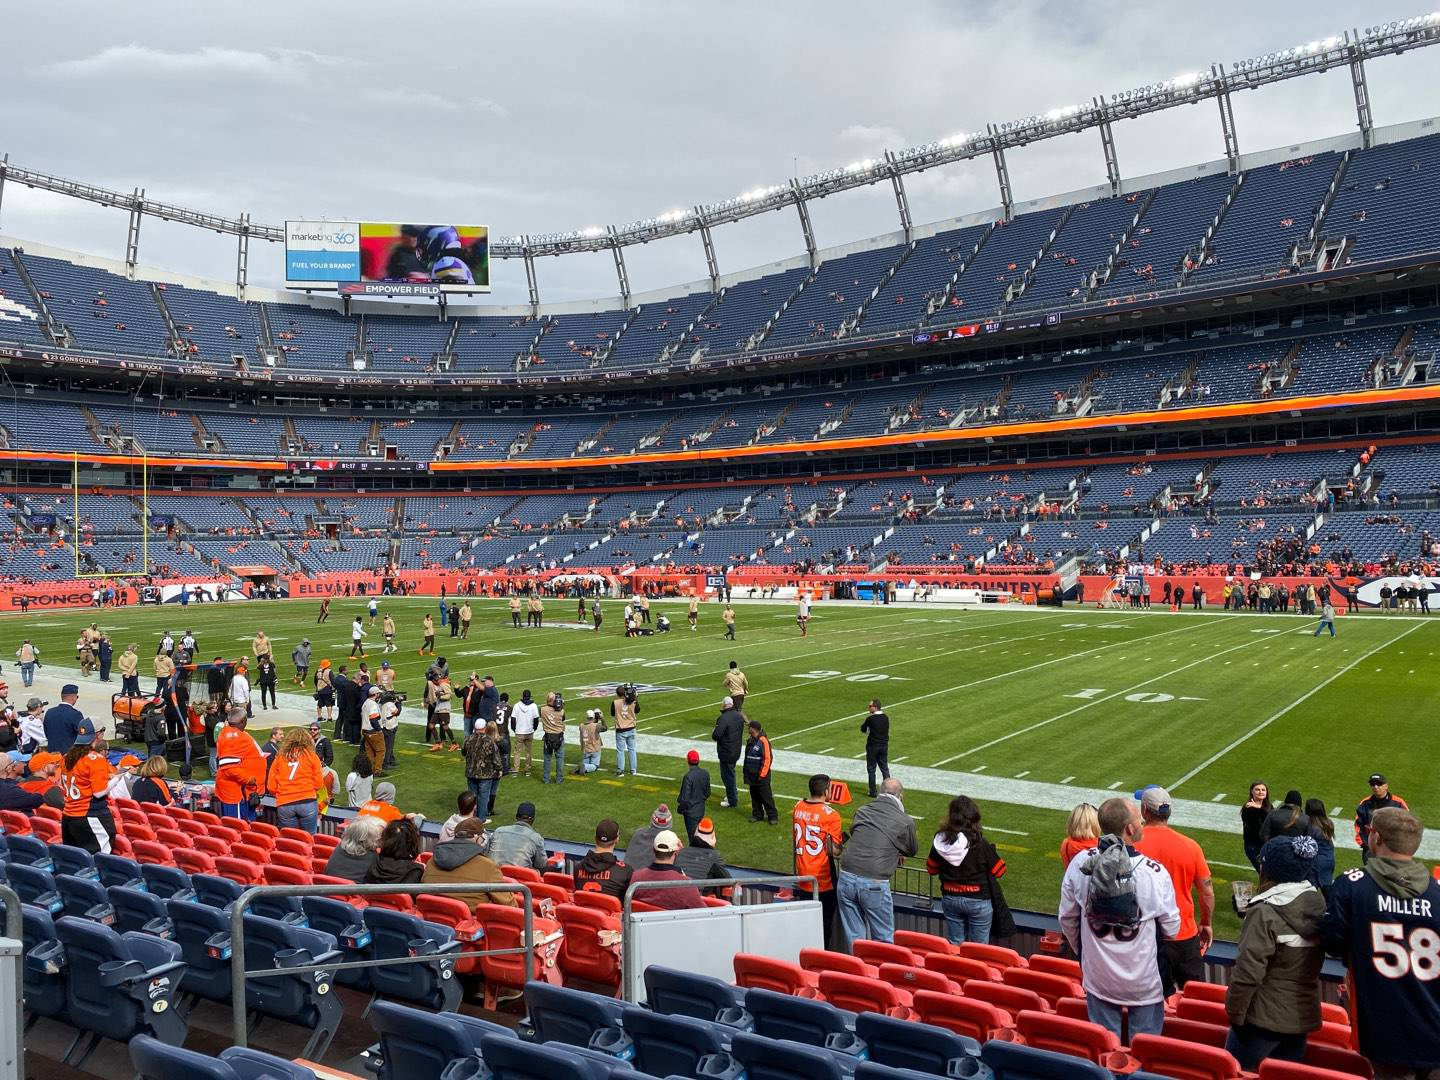 Empower Field at Mile High Stadium Section 101 Row 11 Seat 9